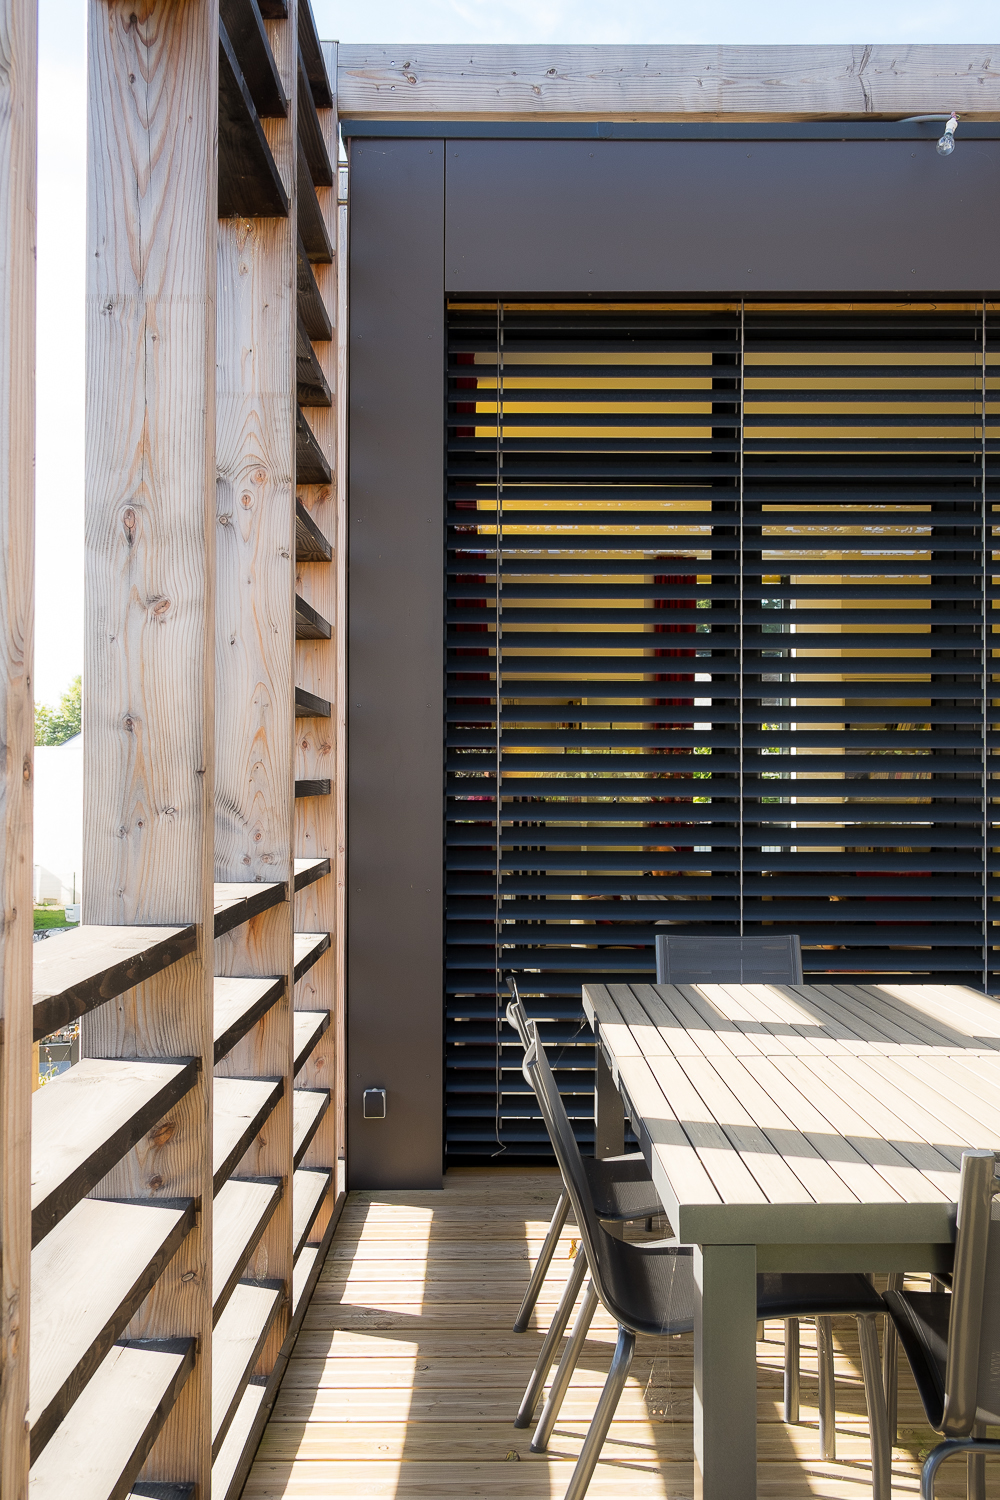 brise soleil terrasse great bois brise soleil et terrasse en ip villa particulier corse du sud. Black Bedroom Furniture Sets. Home Design Ideas